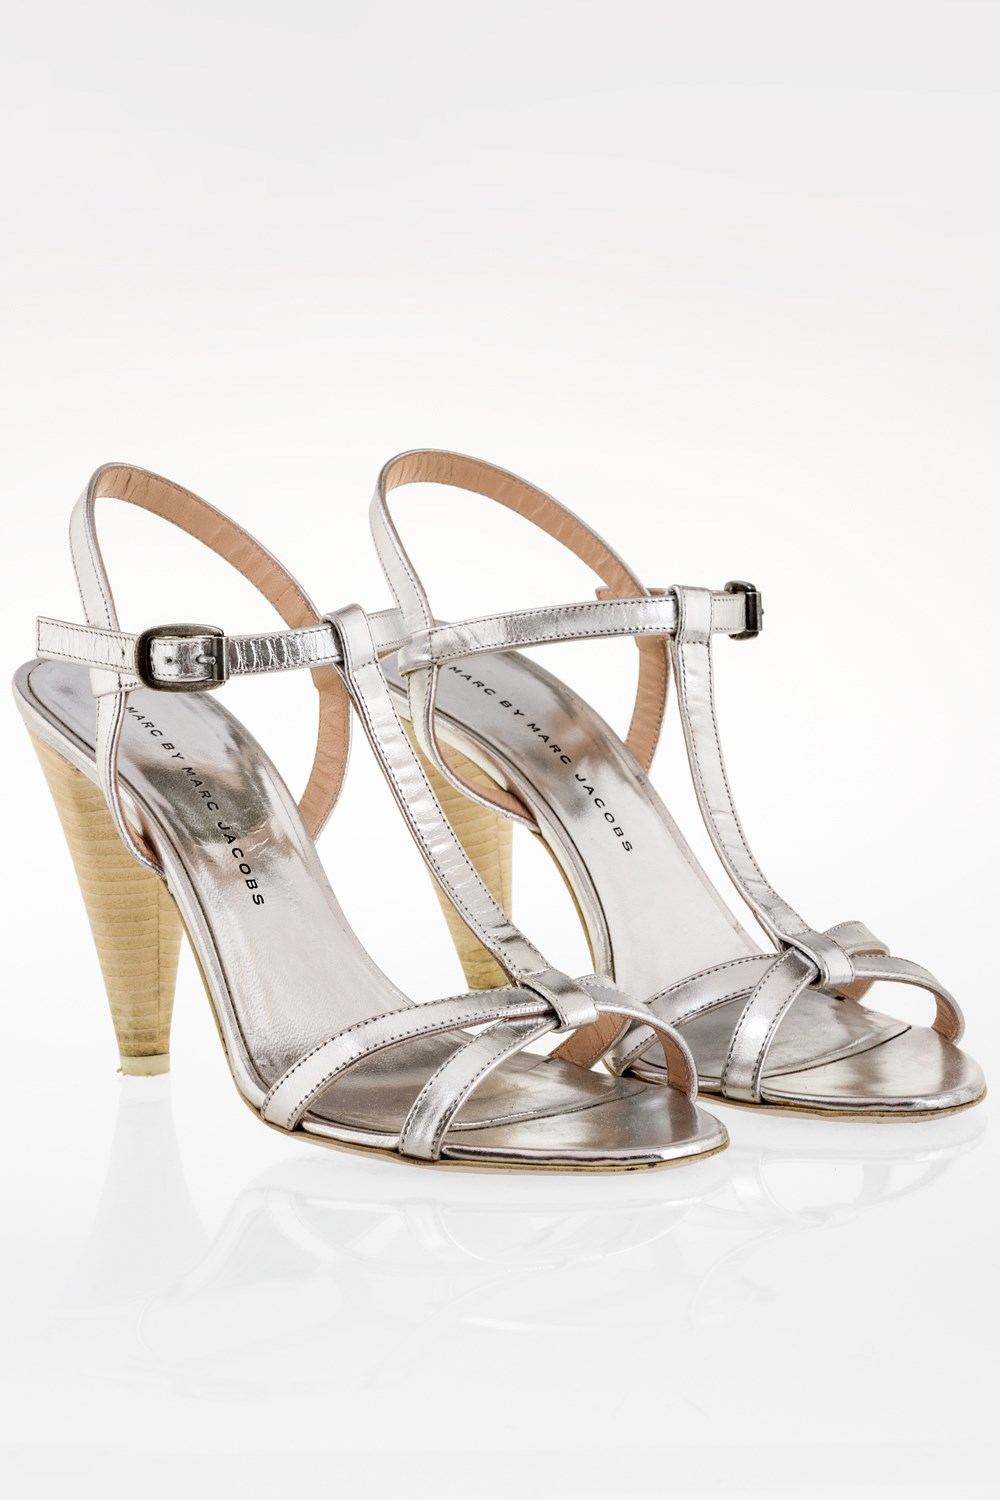 8a9807d61b18 Silver Leather Strappy Sandals   Size  38 - Fit  38.5